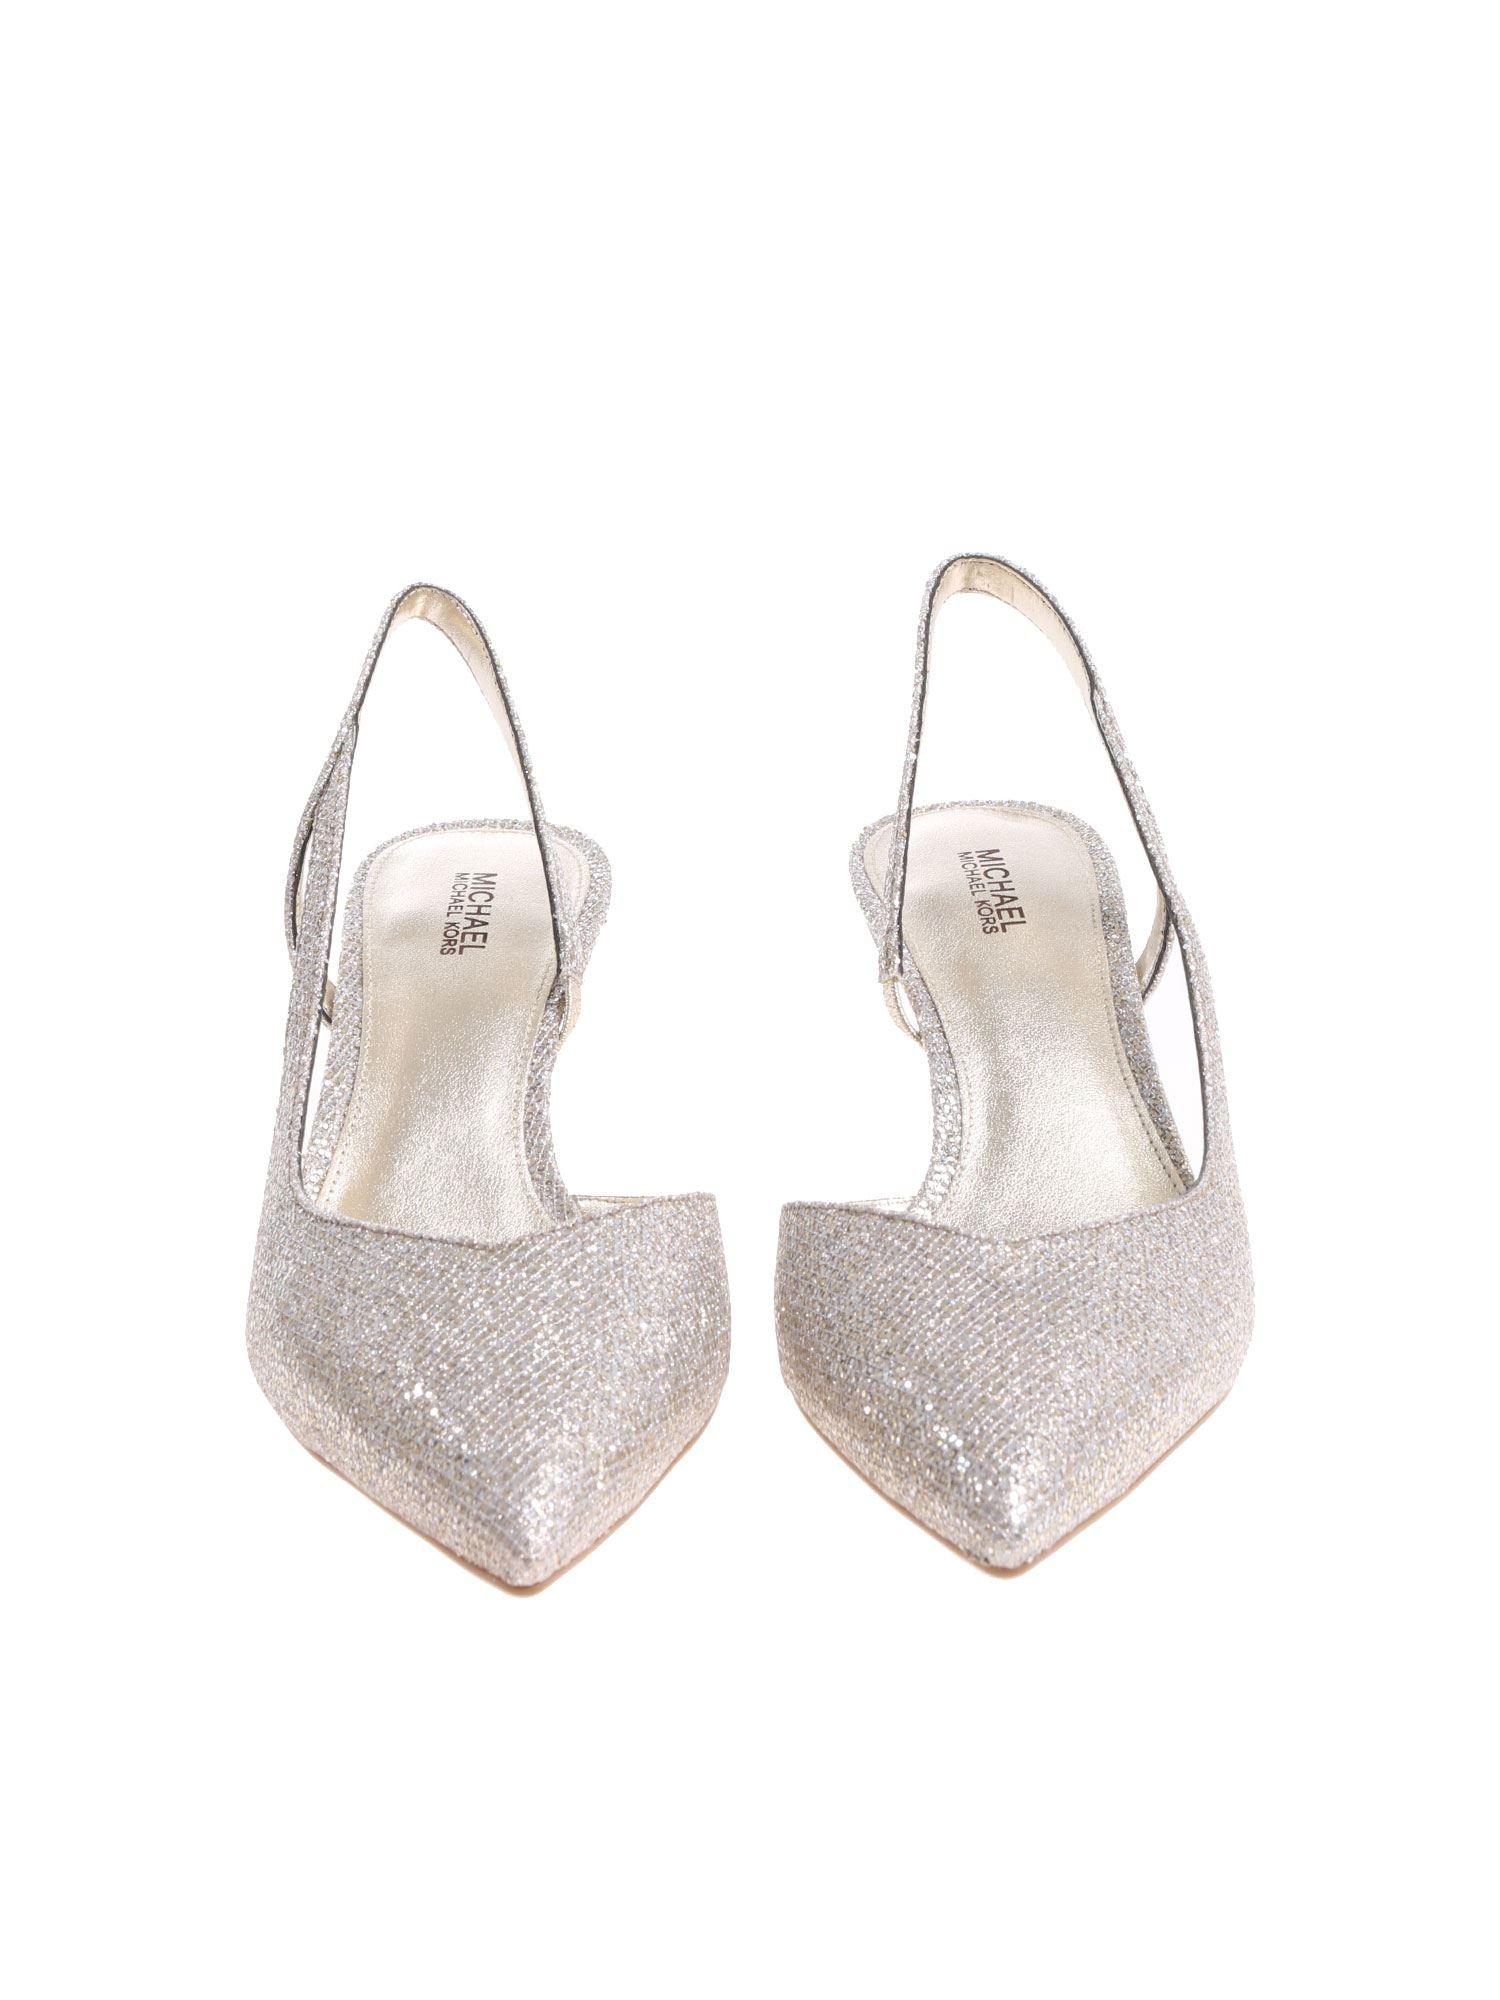 80164cf7525e Lyst - Michael Kors Silver Eliza Flex Kitten Pumps in Metallic